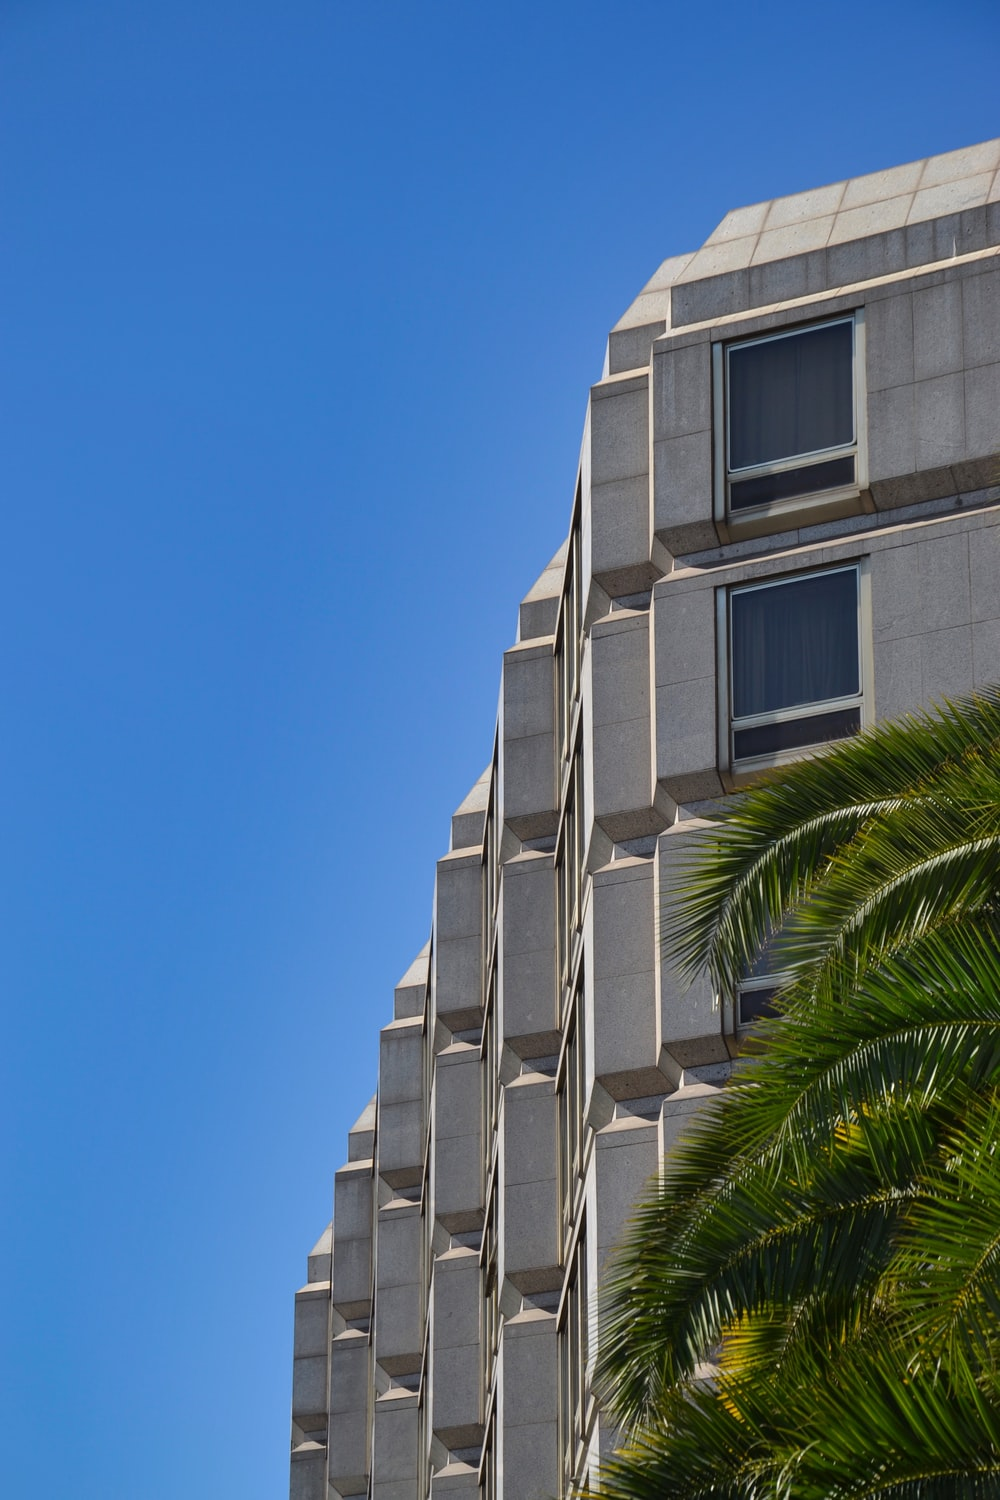 low-angle photography of gray concrete building under blue sky